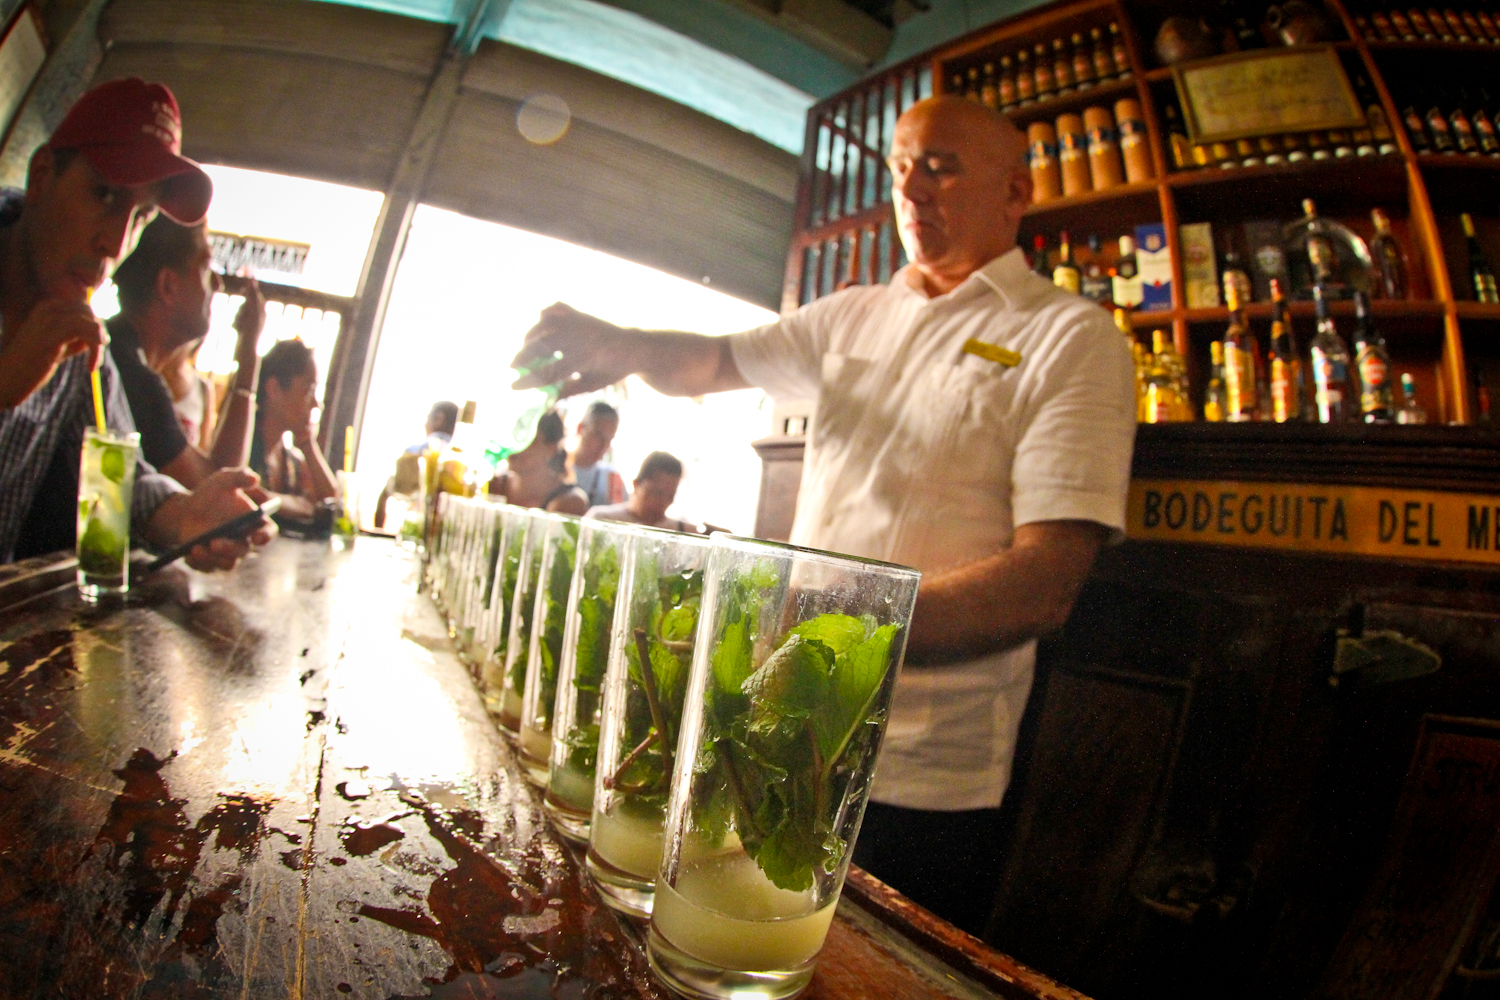 We started out in Havana, taking in a lot of sights in just two short days. Mojitos at La Bodegiuta del Medio are a must.